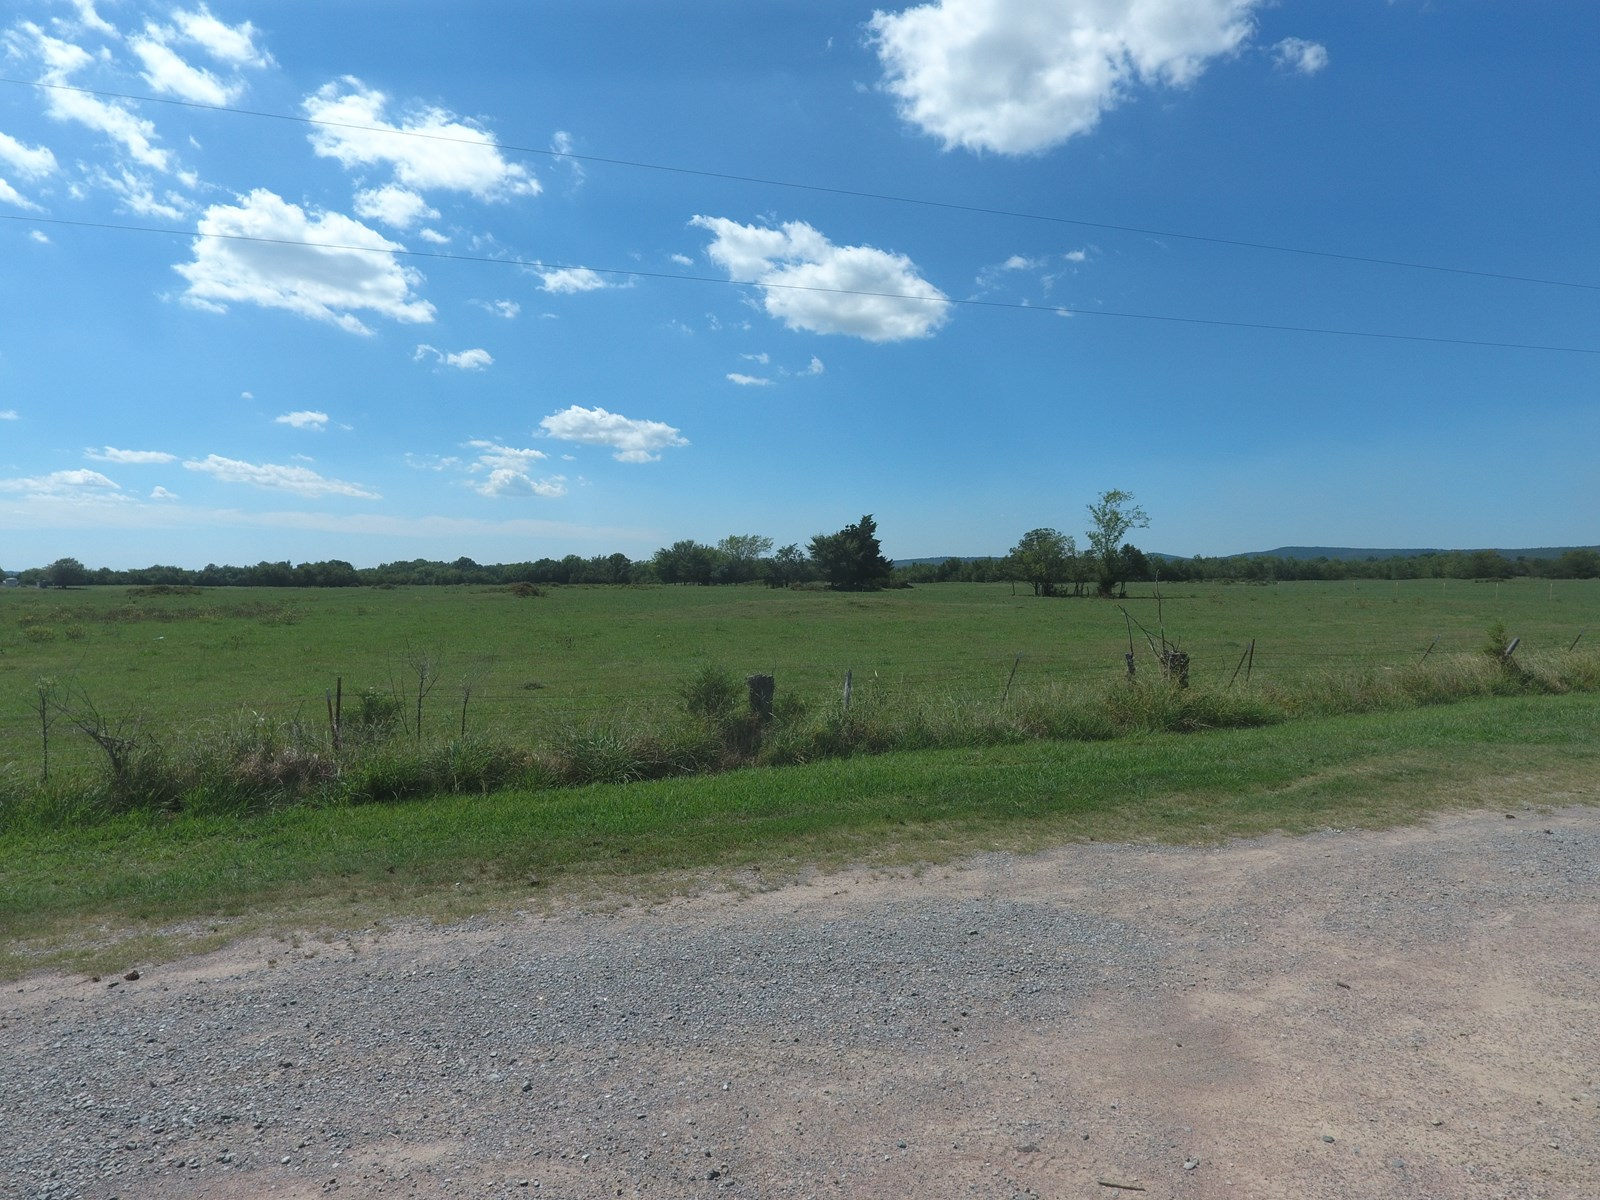 Ranch for Sale Wilburton,Oklahoma- Southeast Oklahoma Ranch